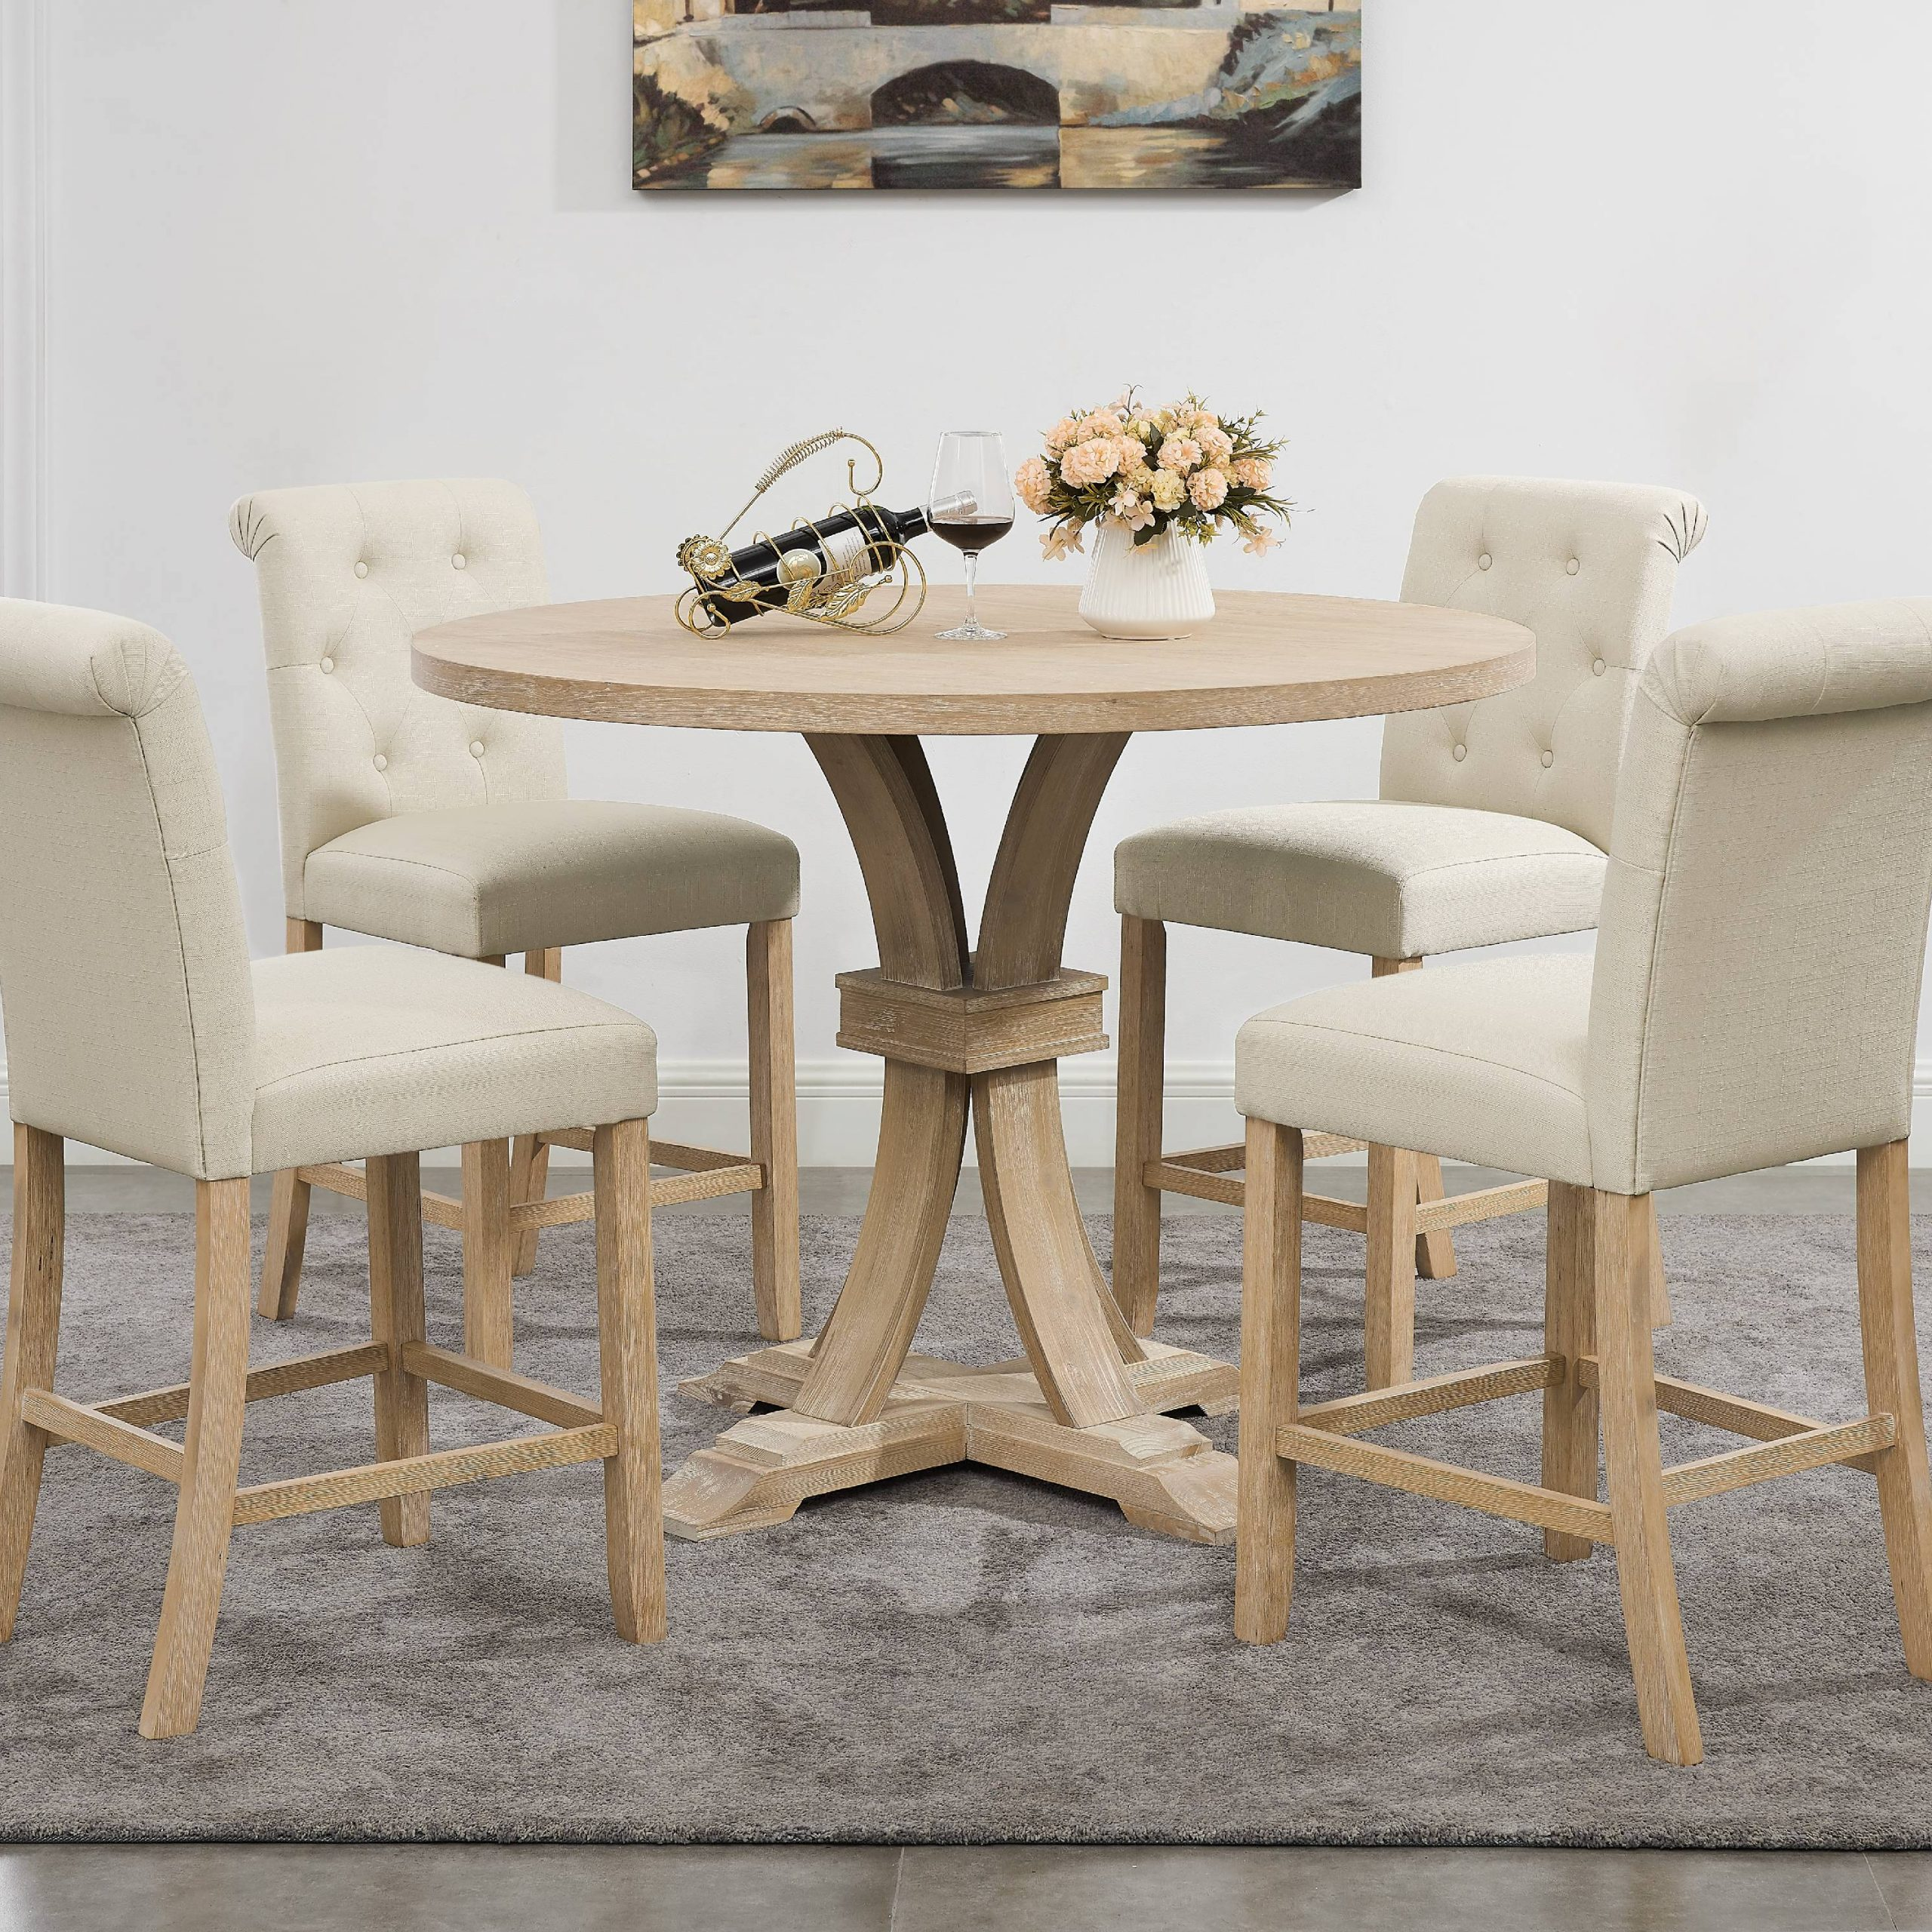 Siena White Washed Finished 5 Piece Counter Height Dining With Regard To Most Recently Released Bushrah Counter Height Pedestal Dining Tables (View 11 of 15)